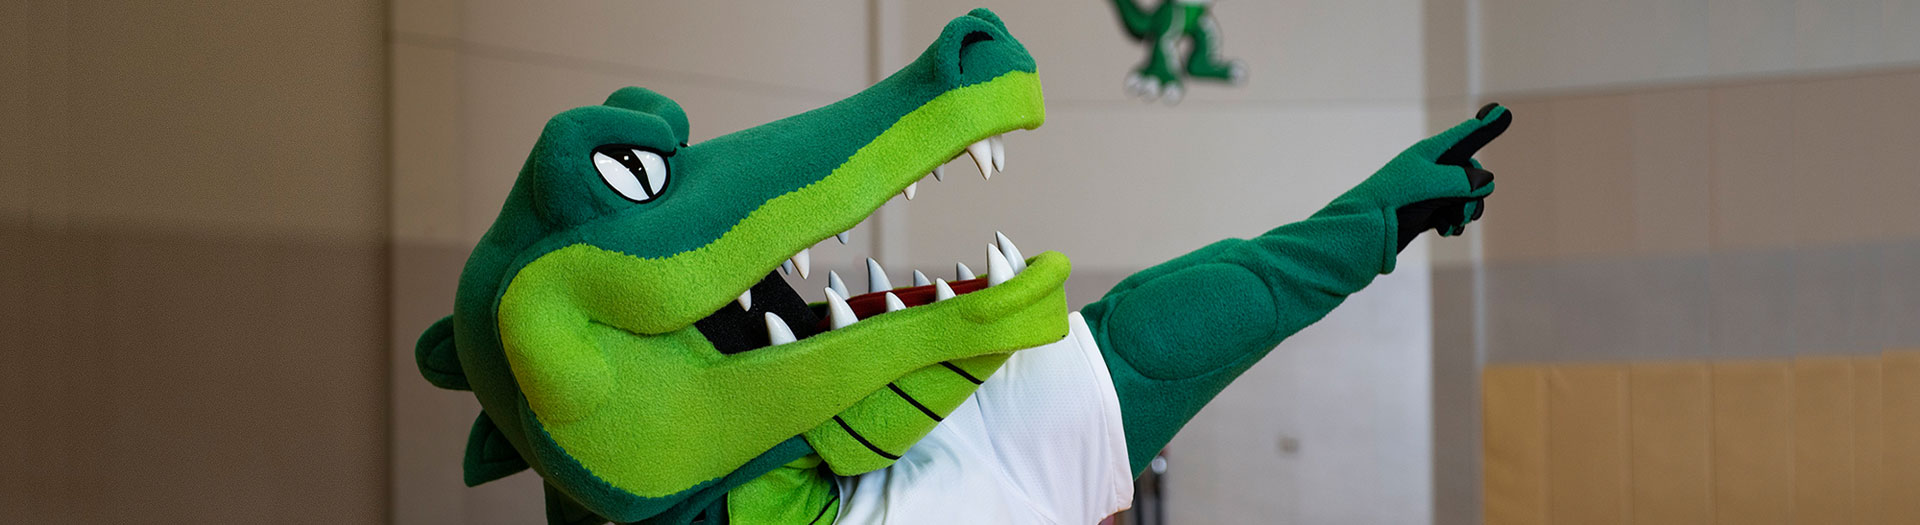 Ed Gator in the basketball court, pointing and looking up